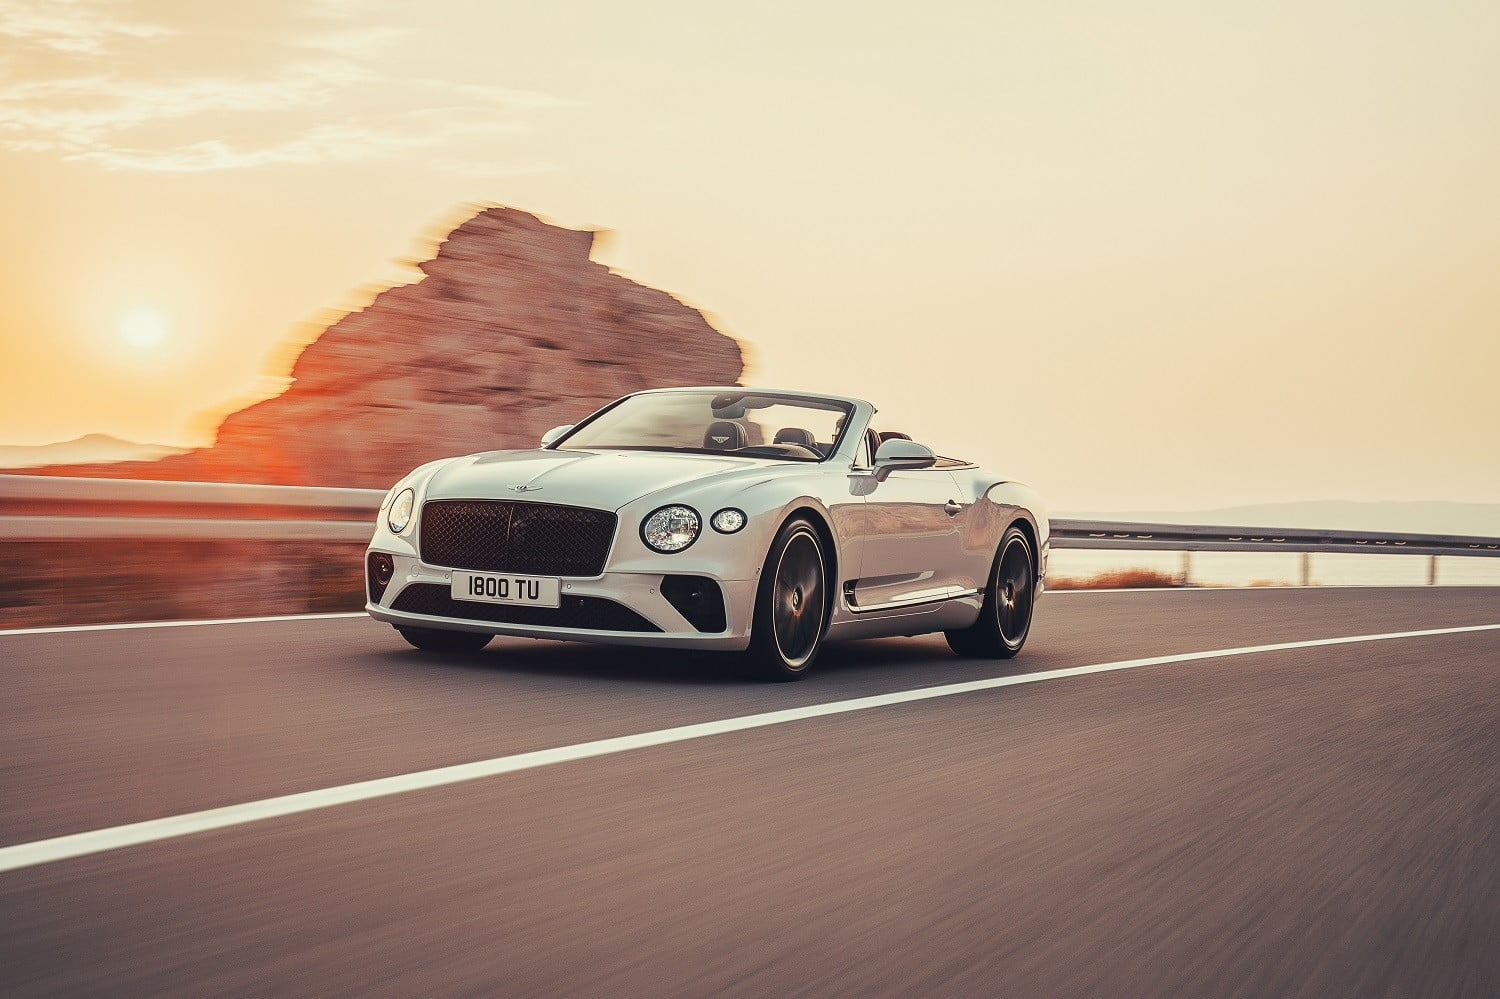 The Bentley Continental GT Convertible is a jet setter's dream come true